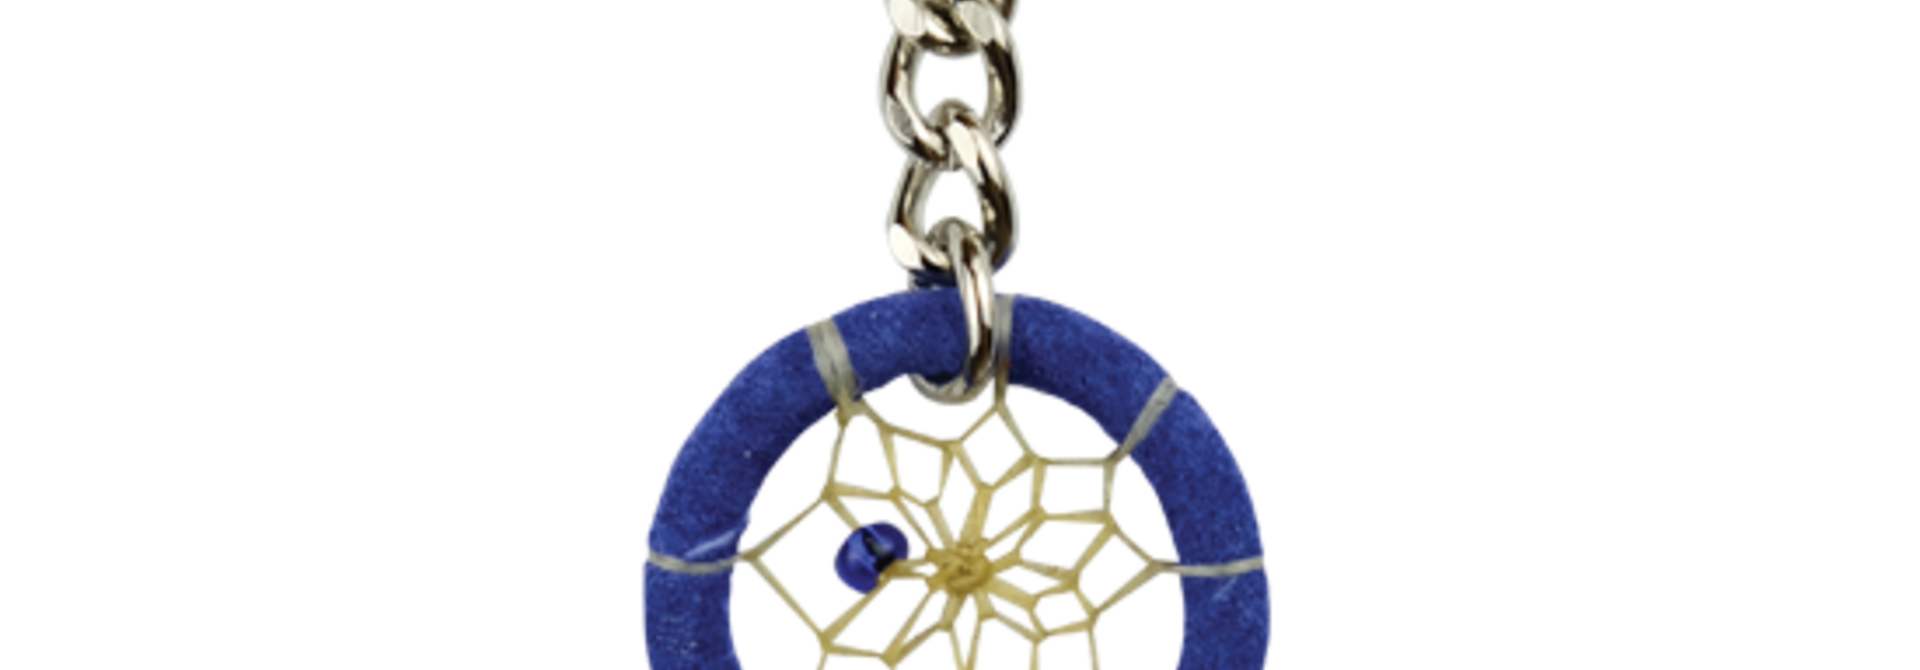 """1.25"""" Dream Catcher Feather Keychains - Royal blue"""